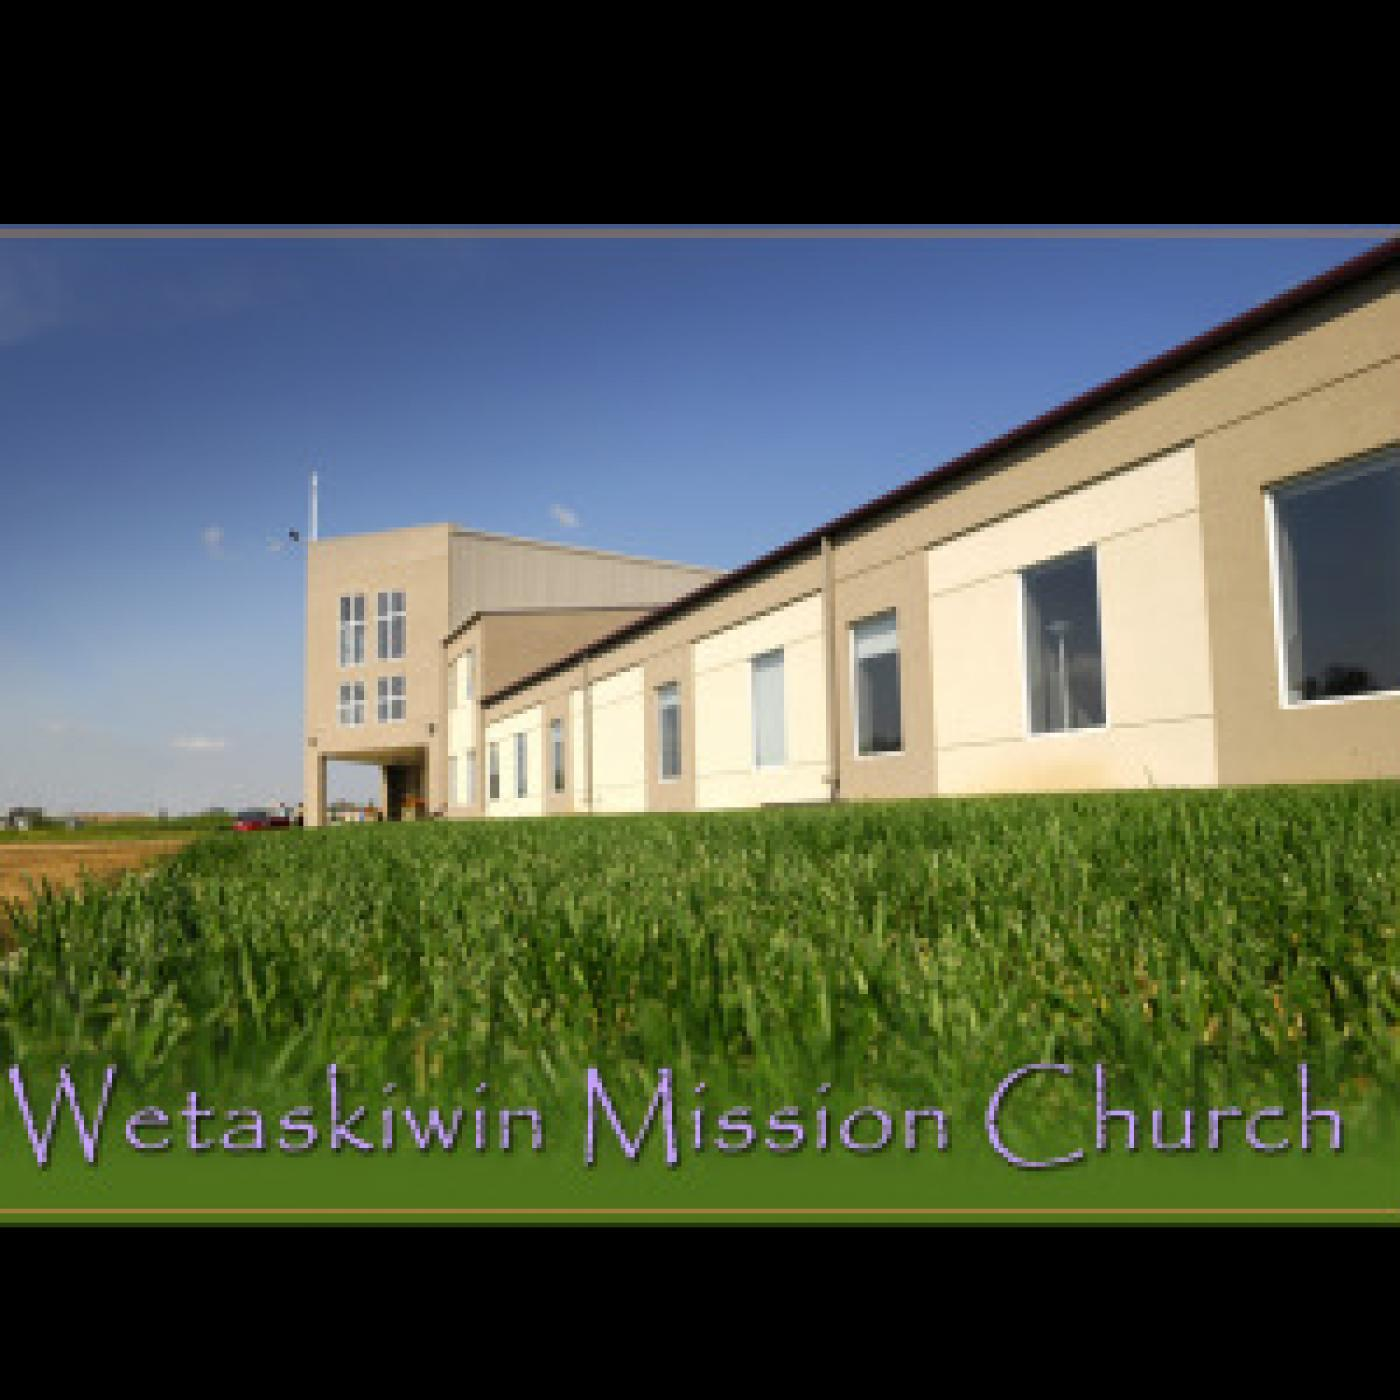 Wetaskiwin Mission Church